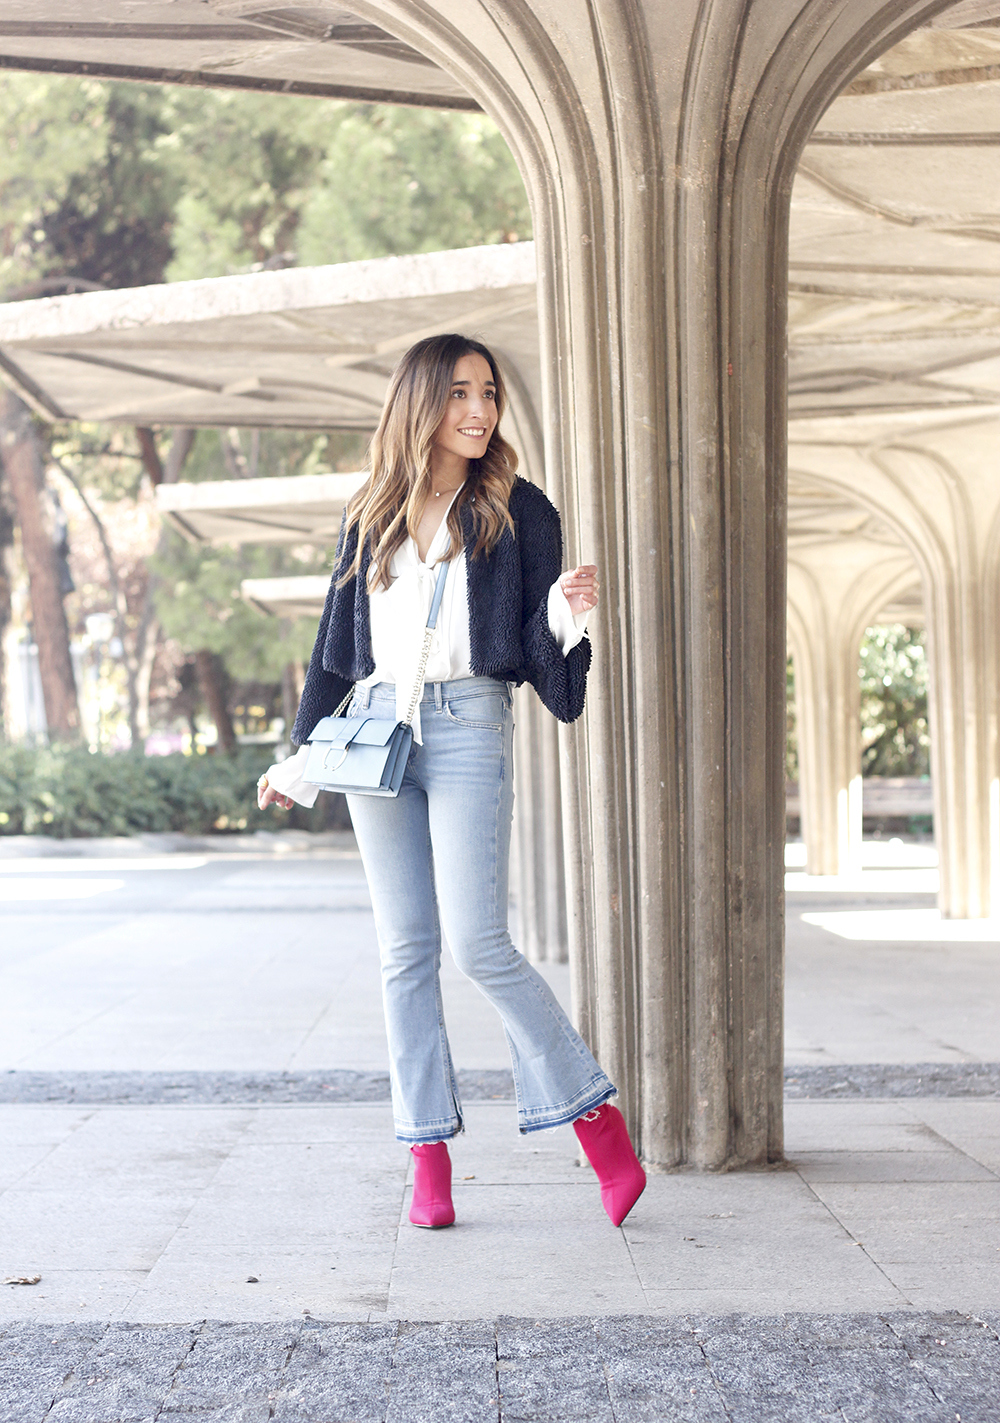 fucsia ankle boots flared jeans suede chaquet uterqüe white shirt outfit trend fashion06